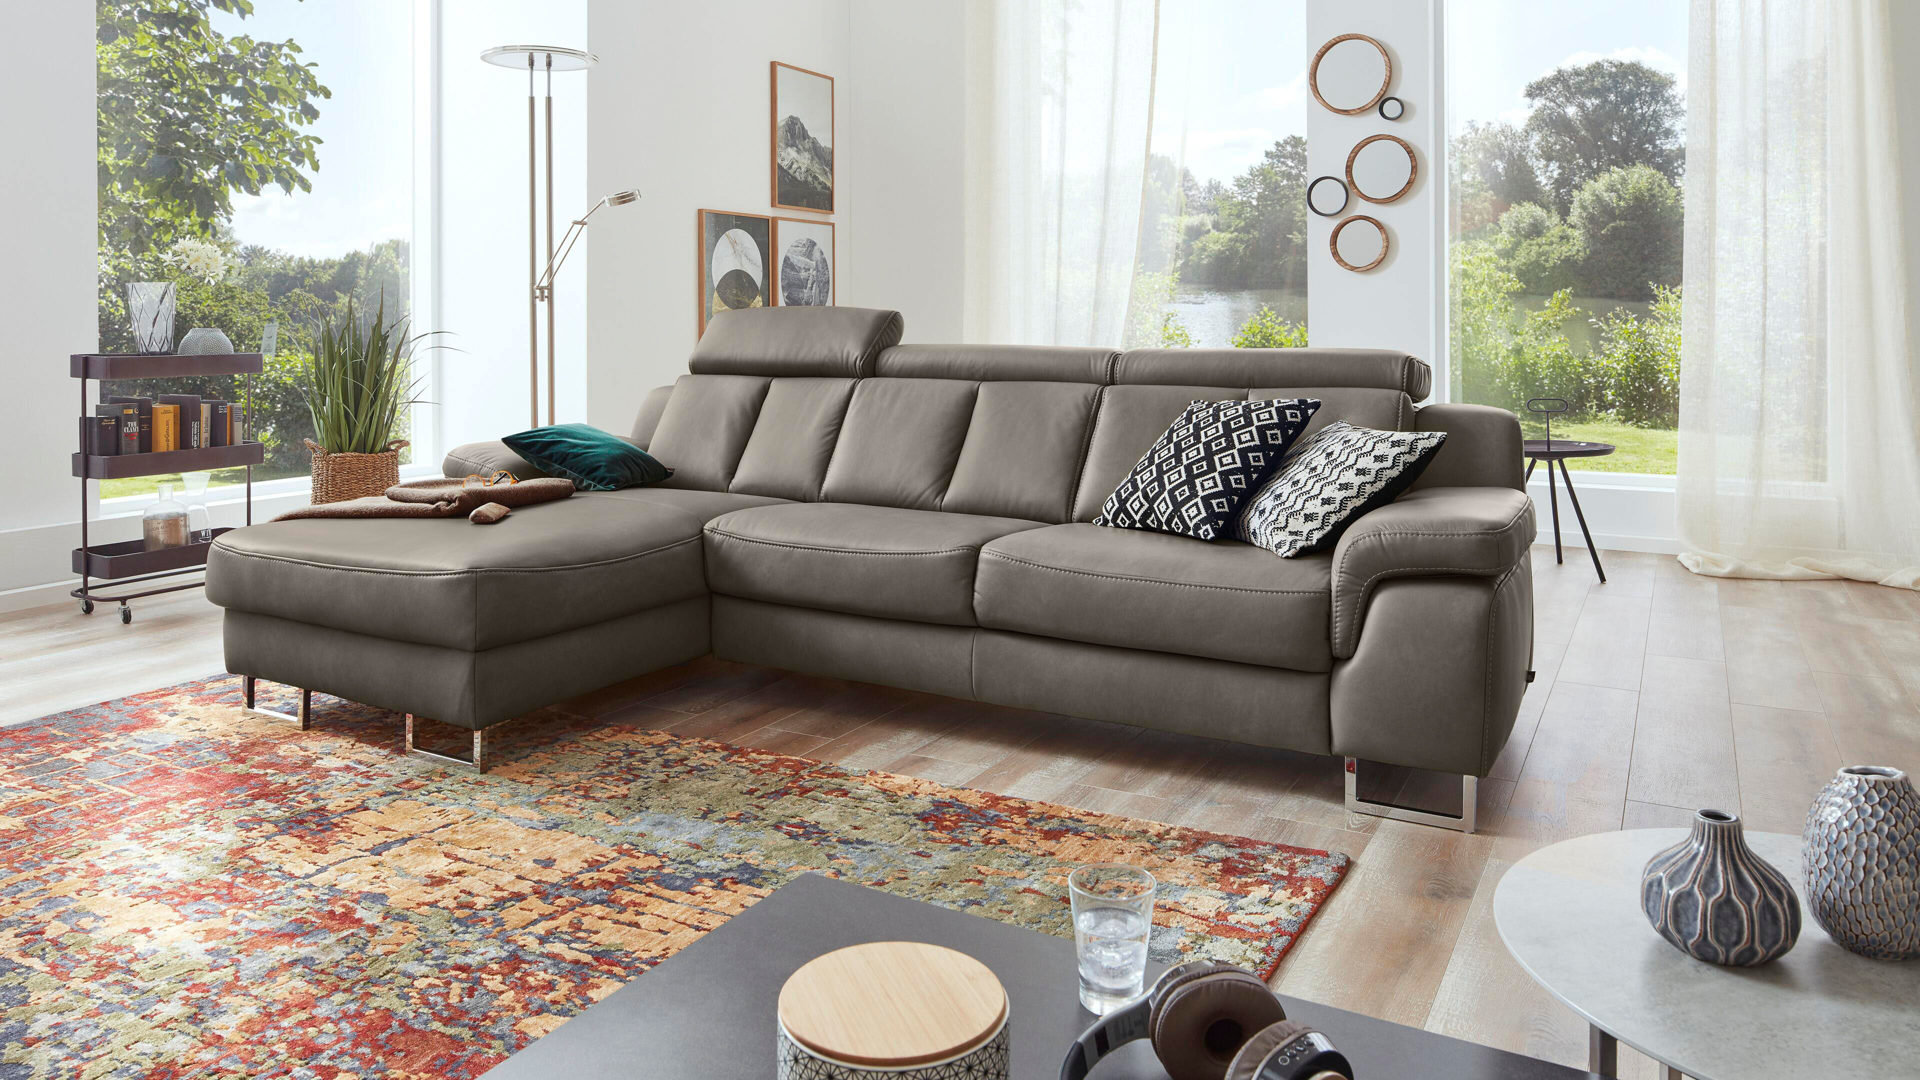 Ecksofa Interliving aus Leder in Grau Interliving Sofa Serie 4050 – Eckkombination rauchgraues LongLife-Leder Cloudy & Chromfüße – Schenkelmaß ca. 177 x 289 cm